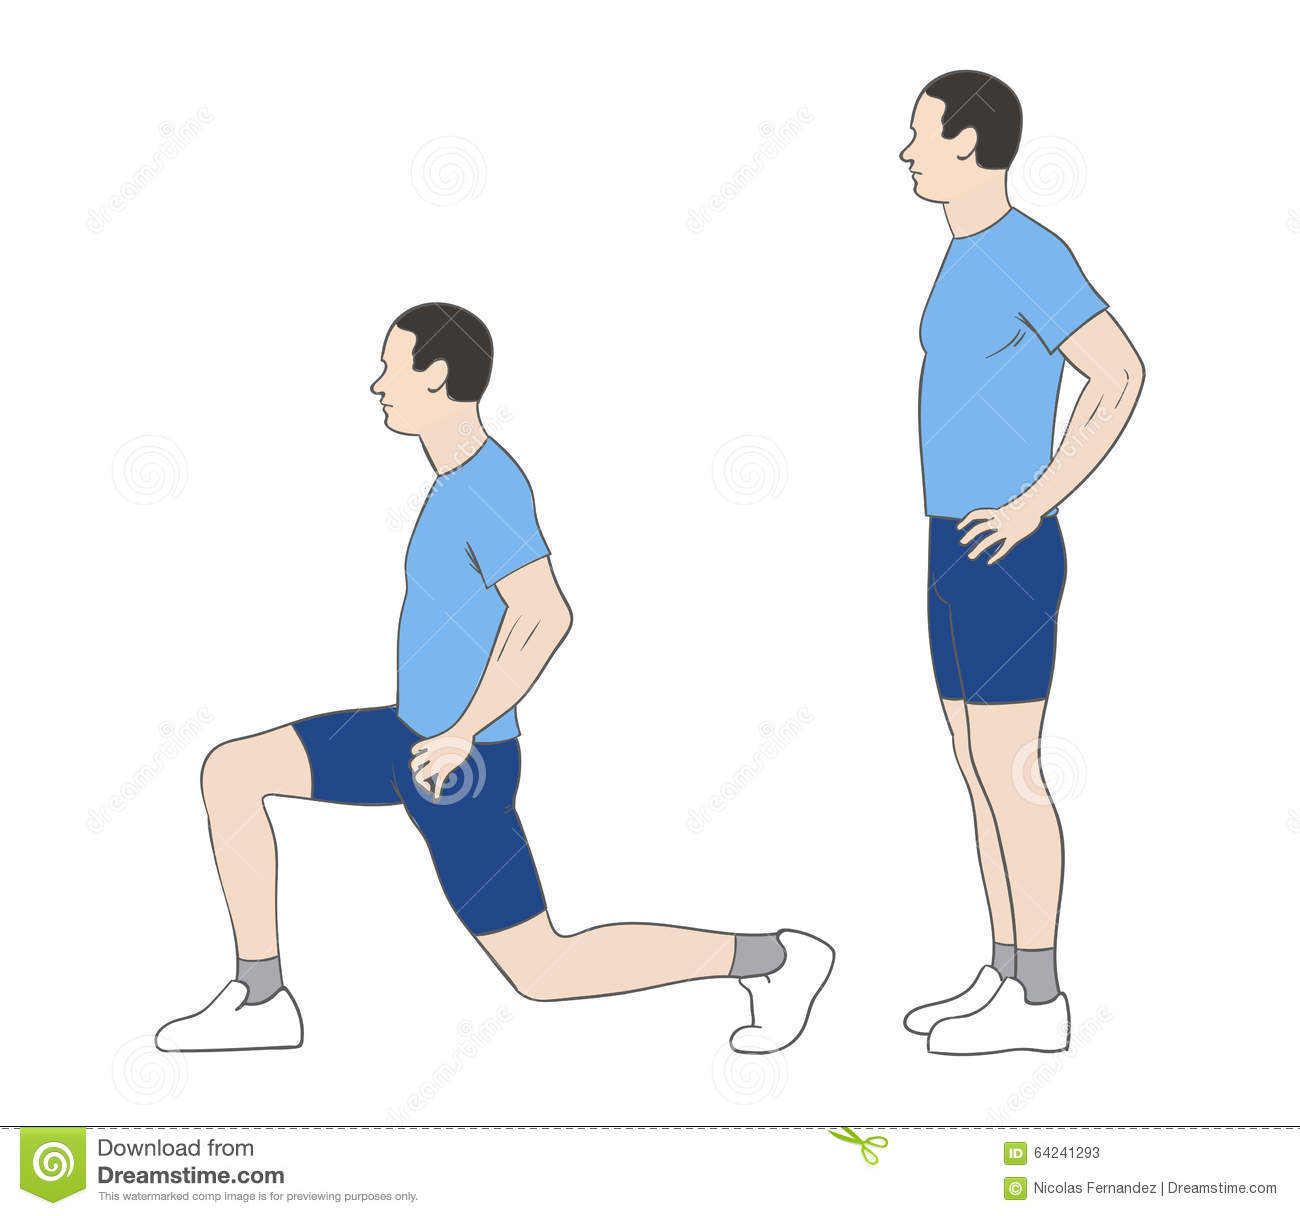 Lunges stock illustration. Illustration of attractive ...